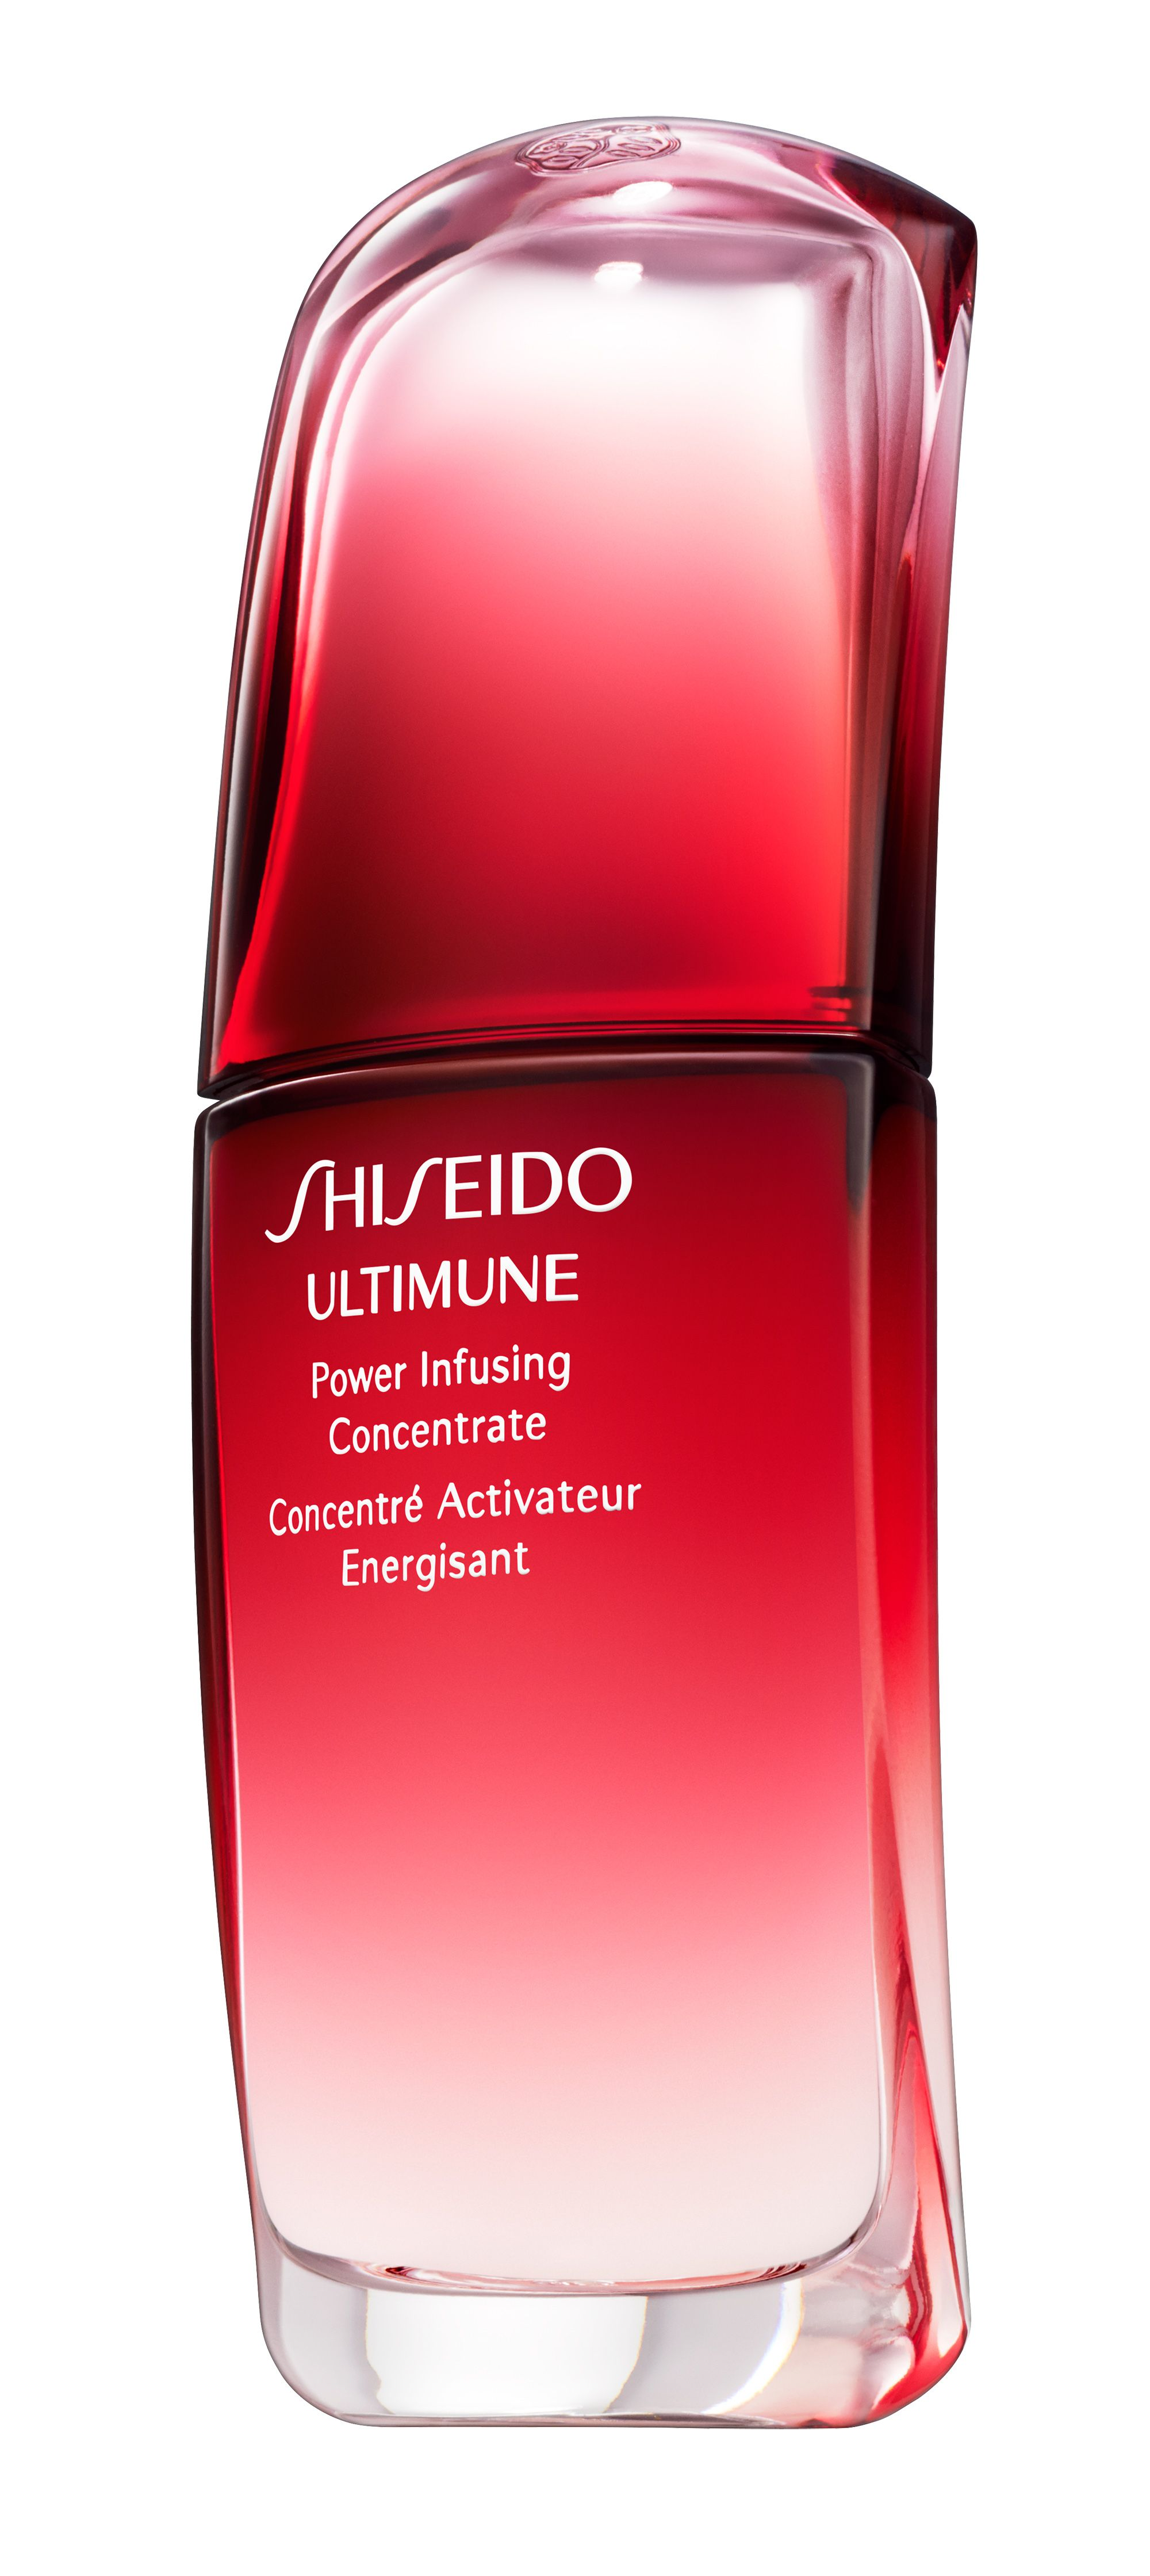 Für alle Frauen, alle Altersgruppen, alle Hauttypen: #Ultimune Power Infusing Concentrate. #beautyinyou